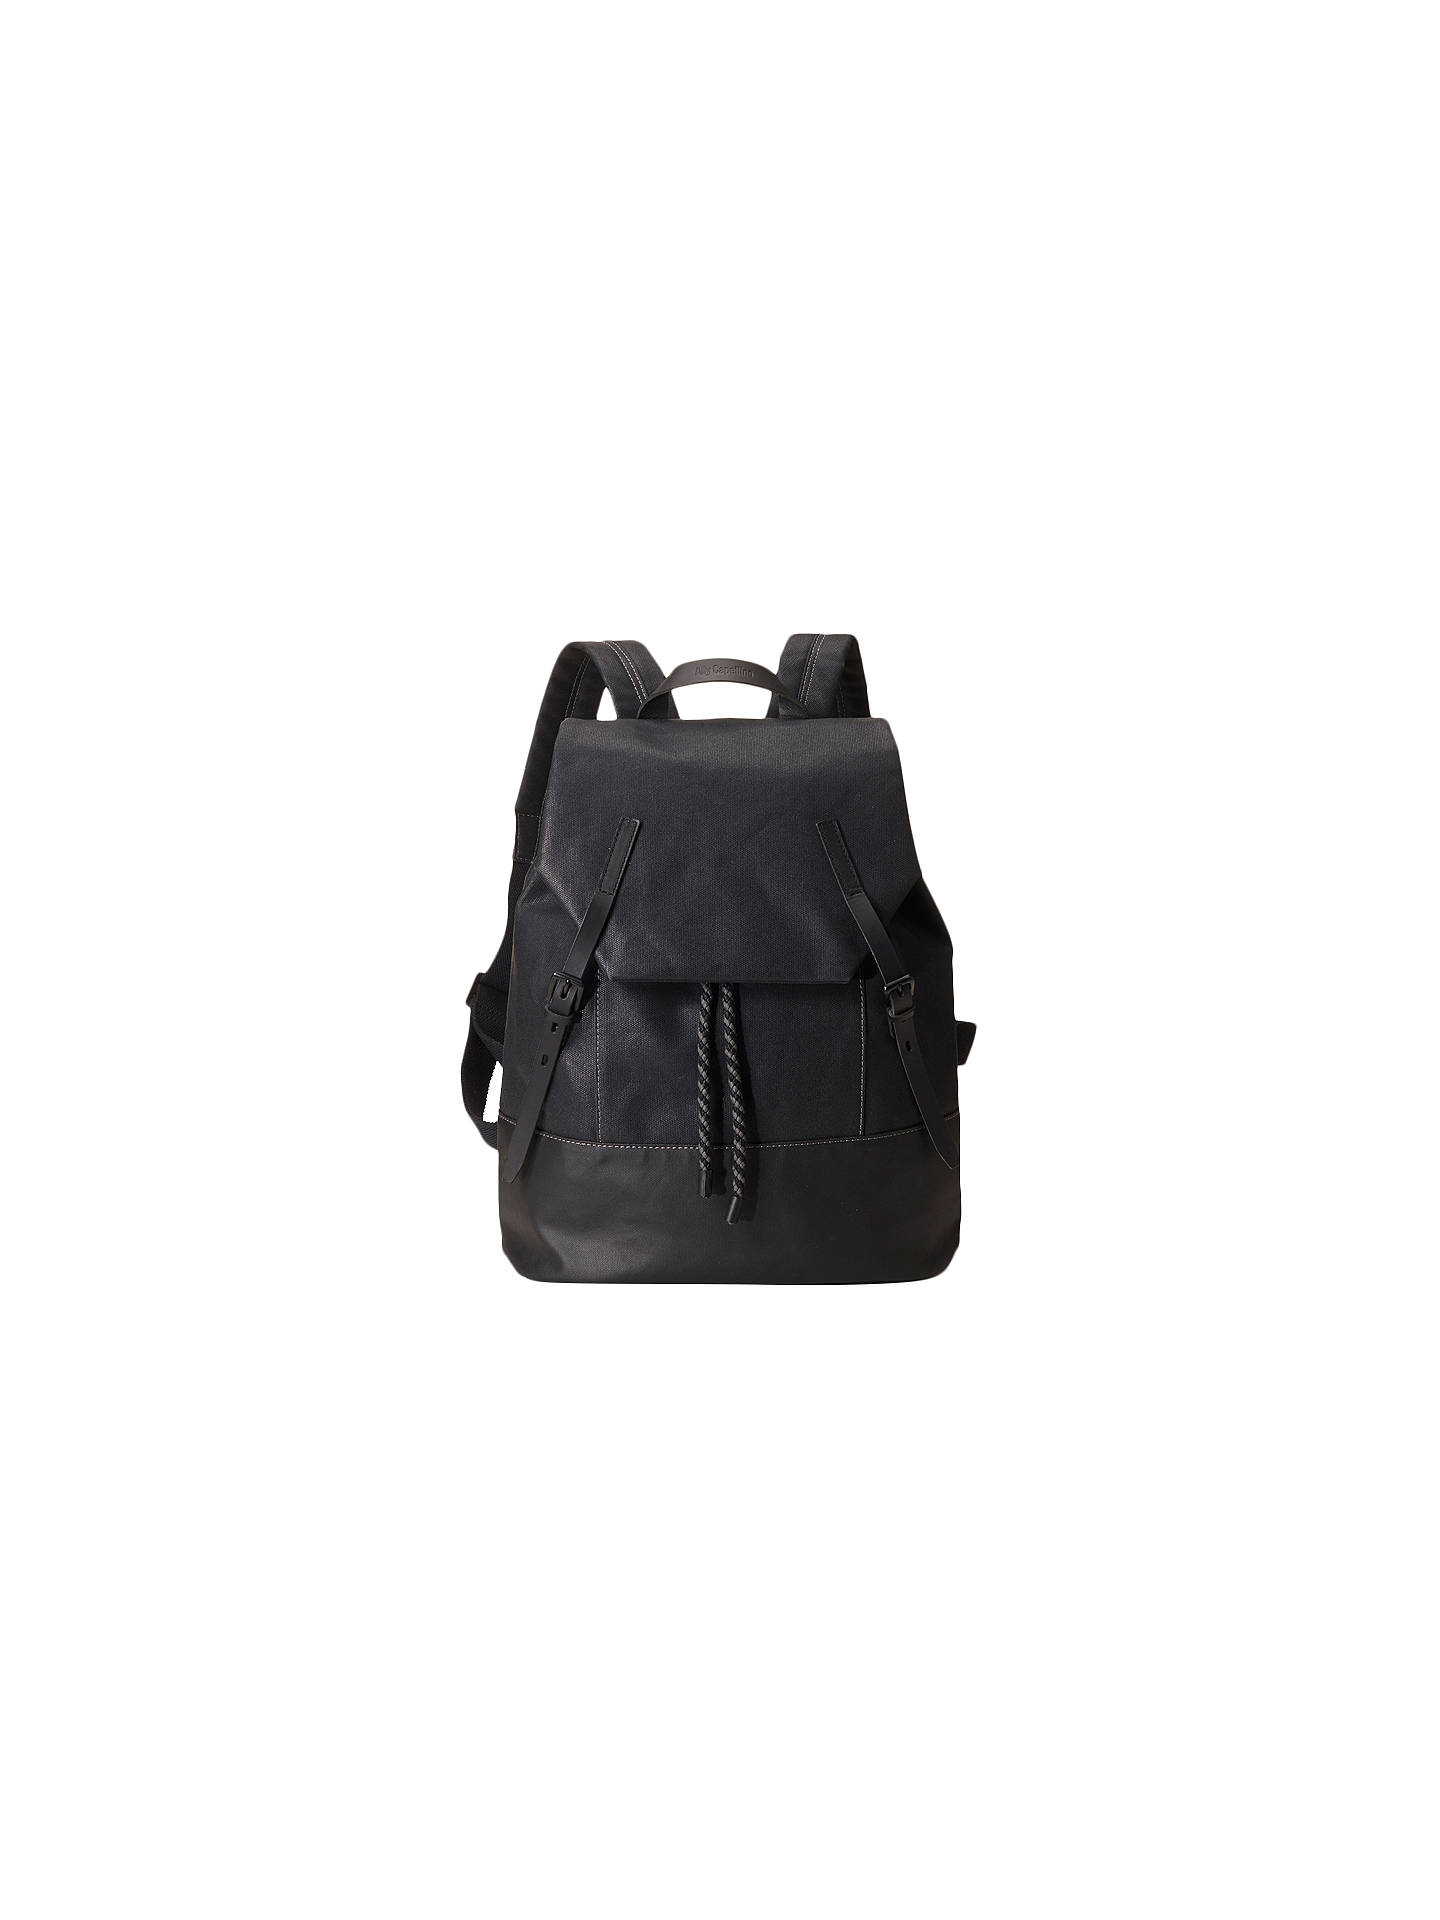 BuyAlly Capellino Dean Waxed Canvas Backpack, Black Online at johnlewis.com  ... a746e6a122